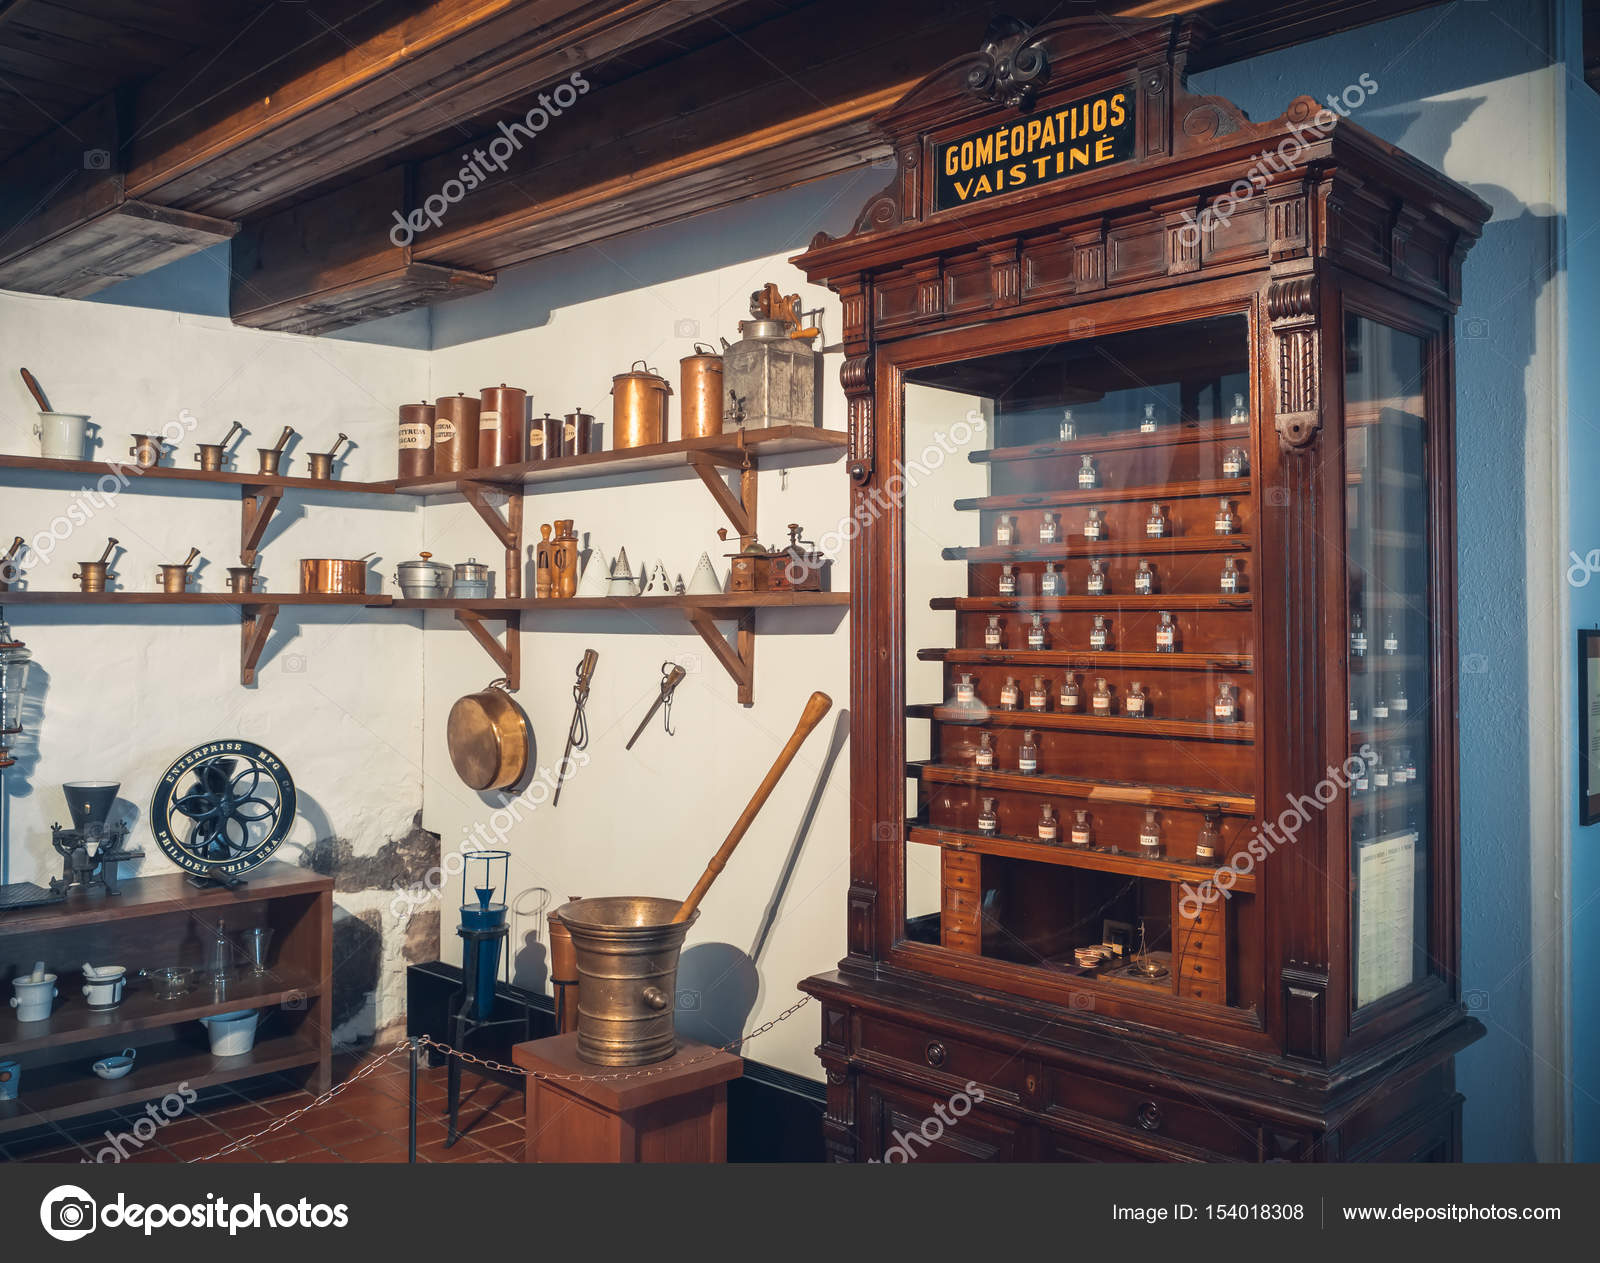 Kaunas, Lithuania   May 12, 2017: Old Apothecary Cabinet Of Homeopathy  Drugs And